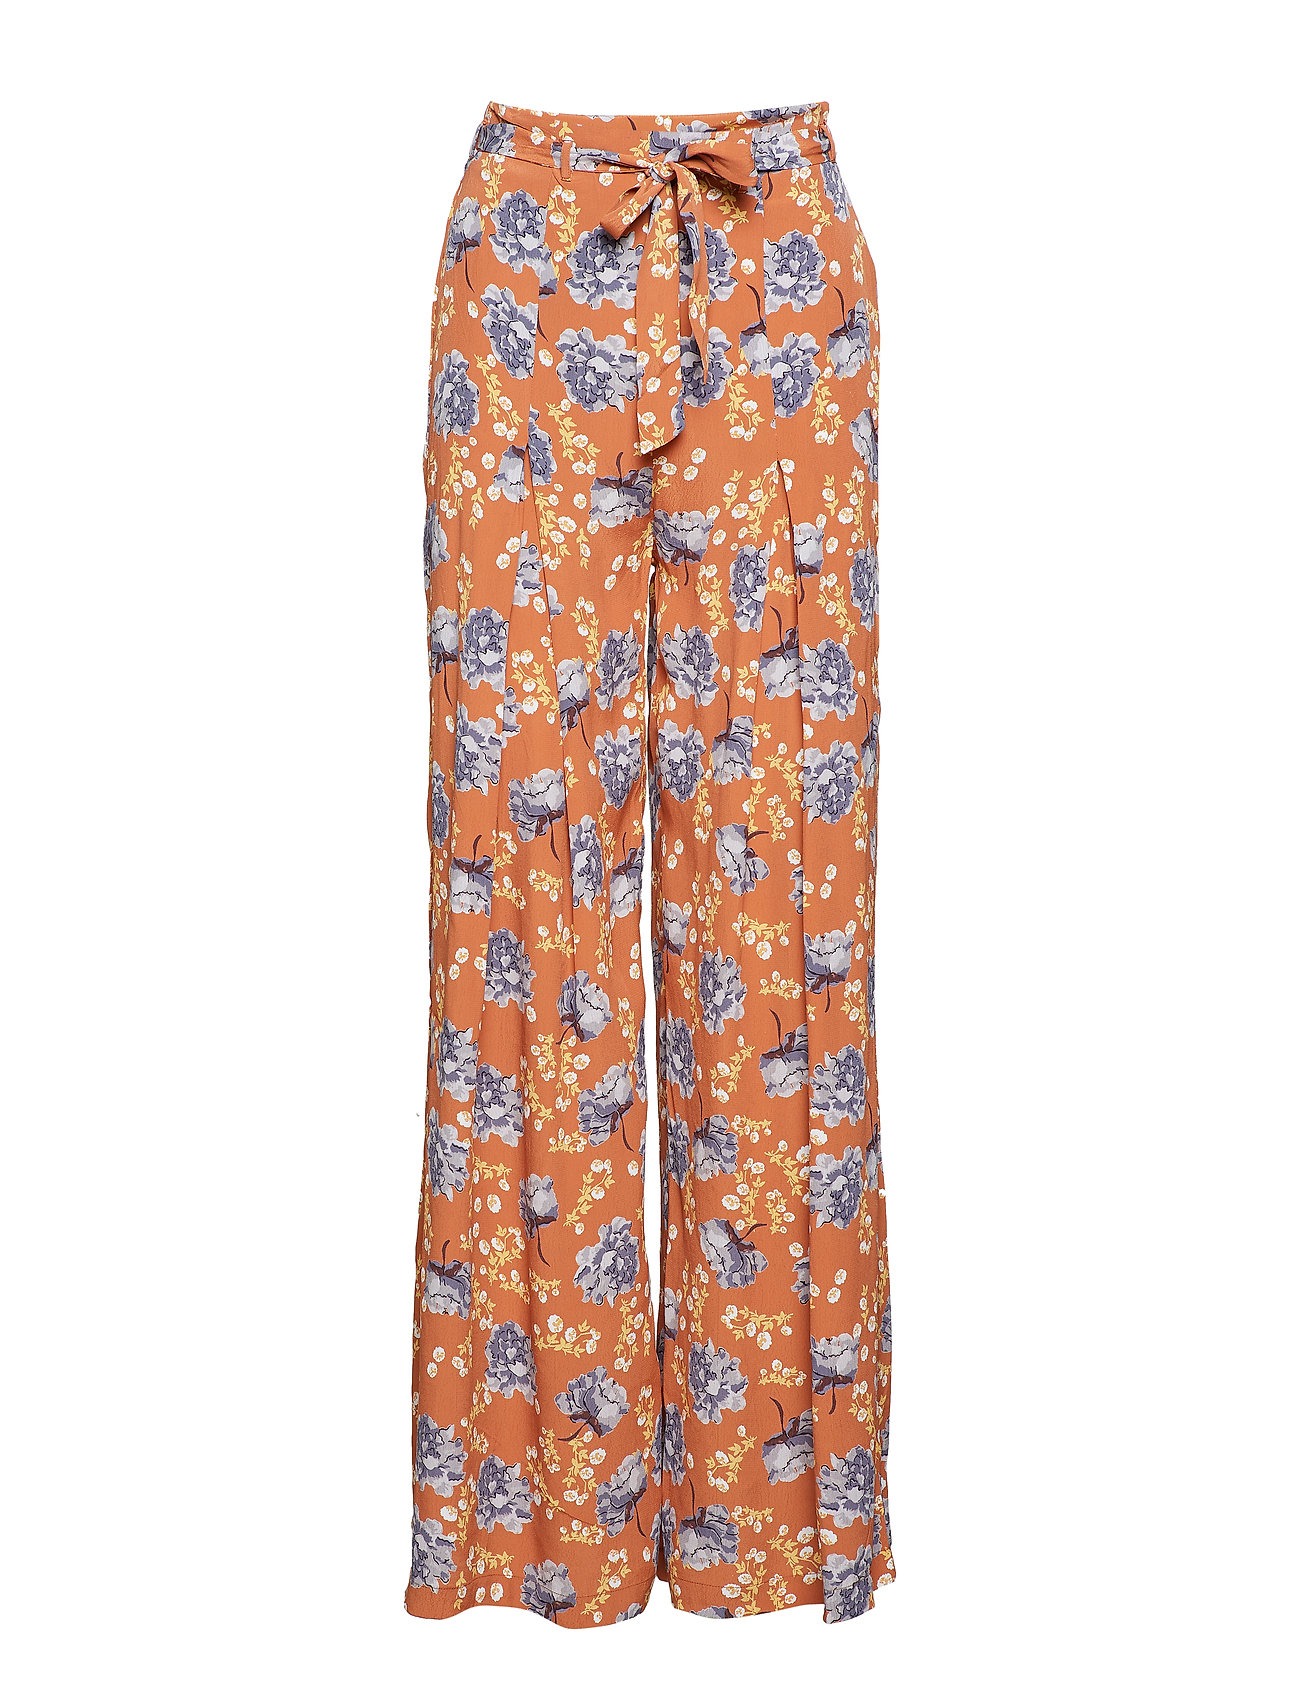 Image of Wide Trousers Vide Bukser Orange By Ti Mo (3088907629)